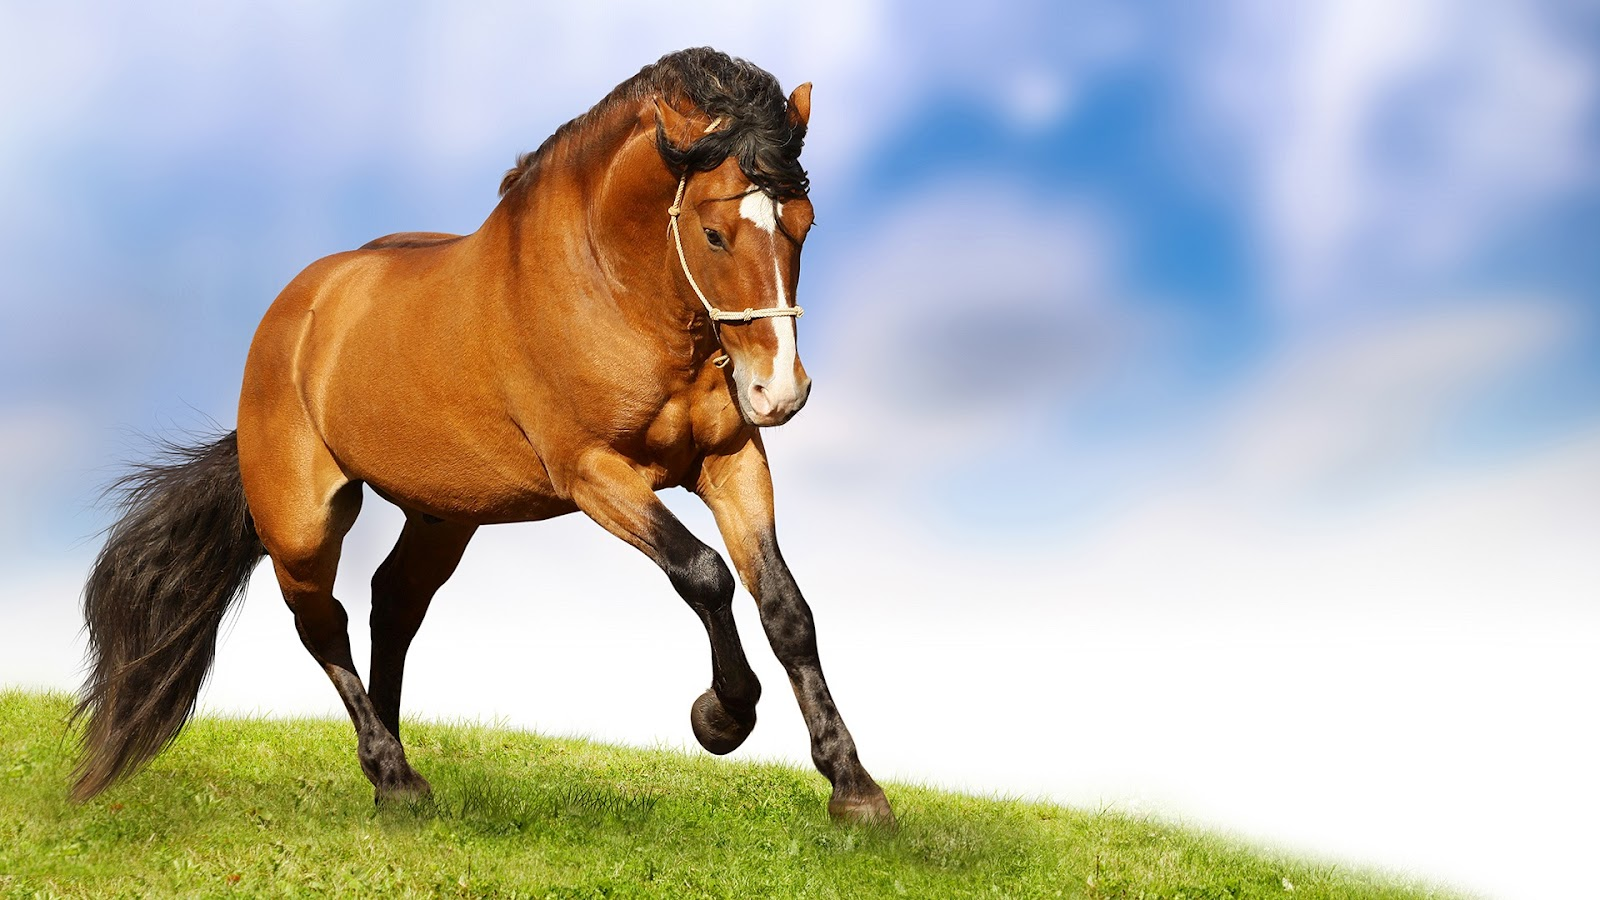 Wallpapers world horse wallpapers free download for - Free horse backgrounds ...